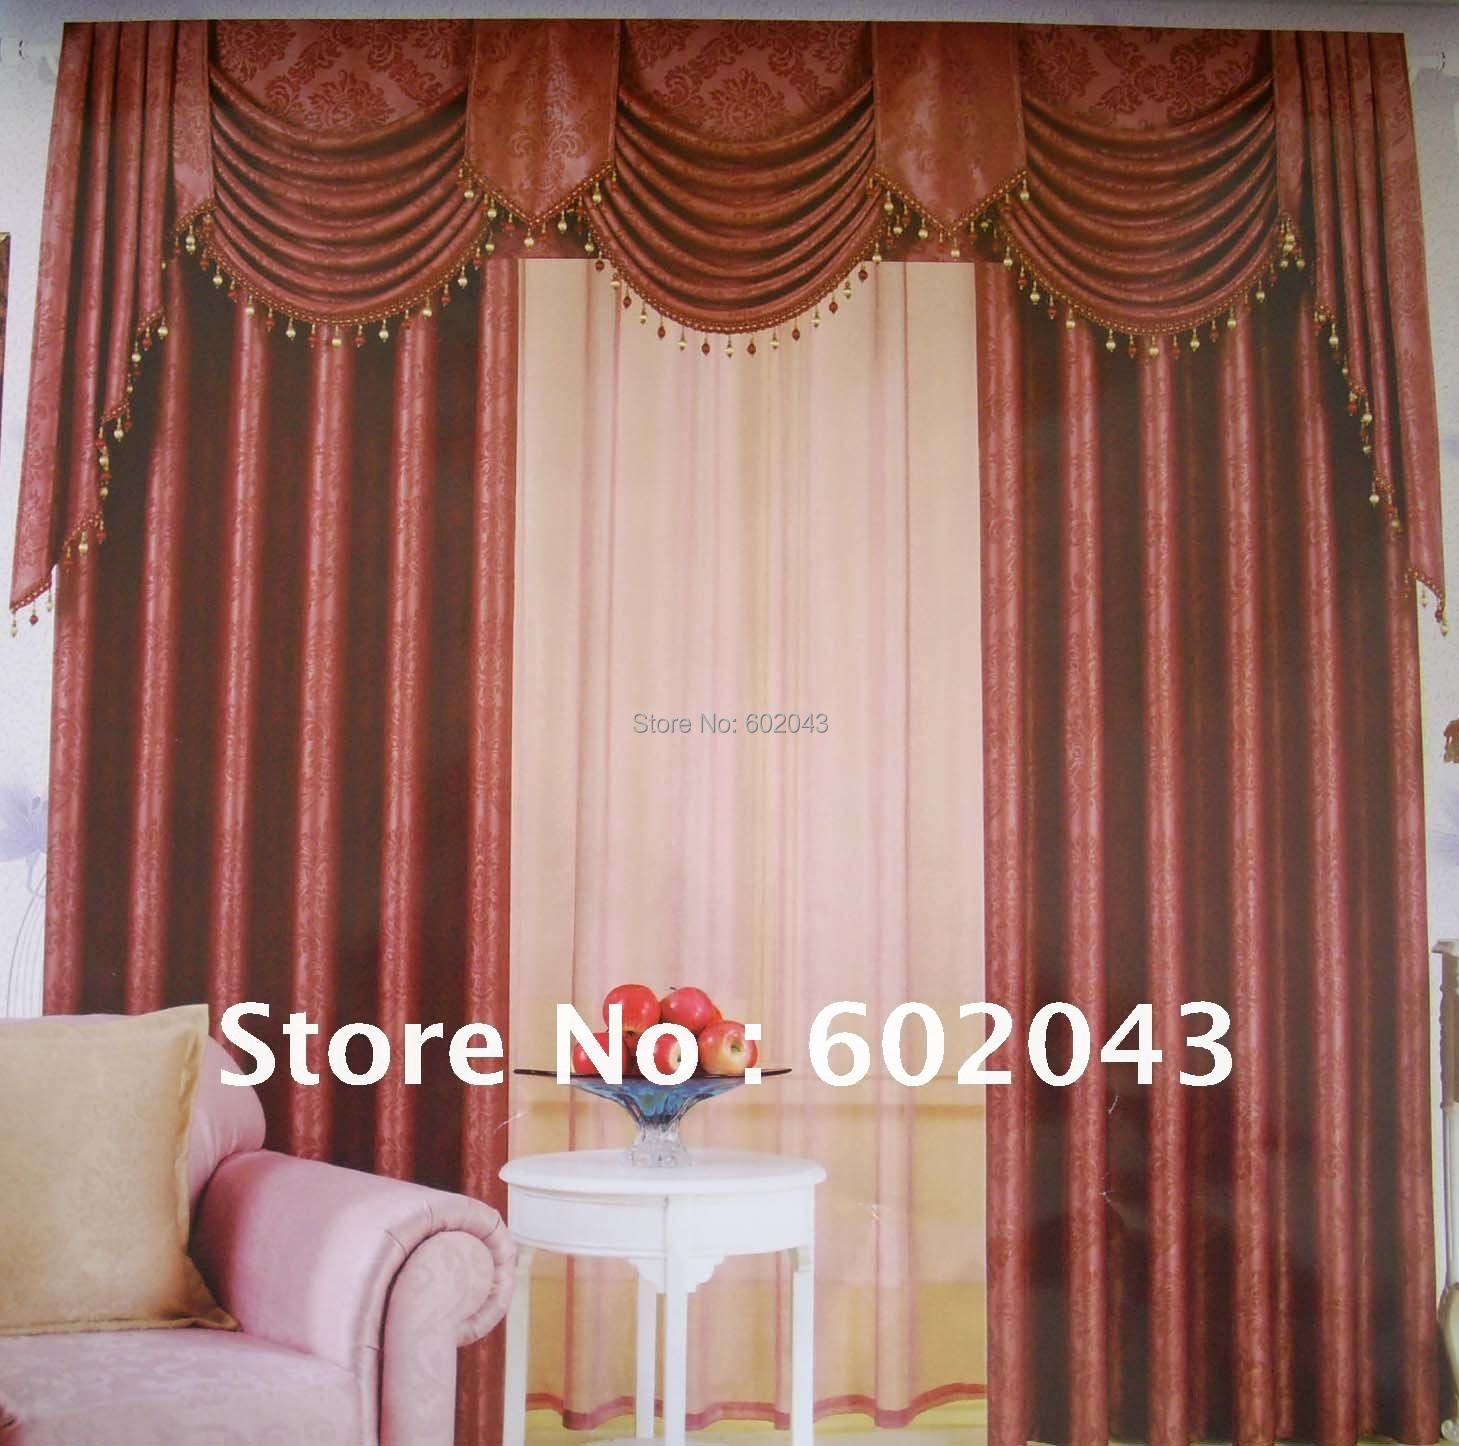 dressing faux eyelet merge p on sale curtains window curtain ideas silk punching